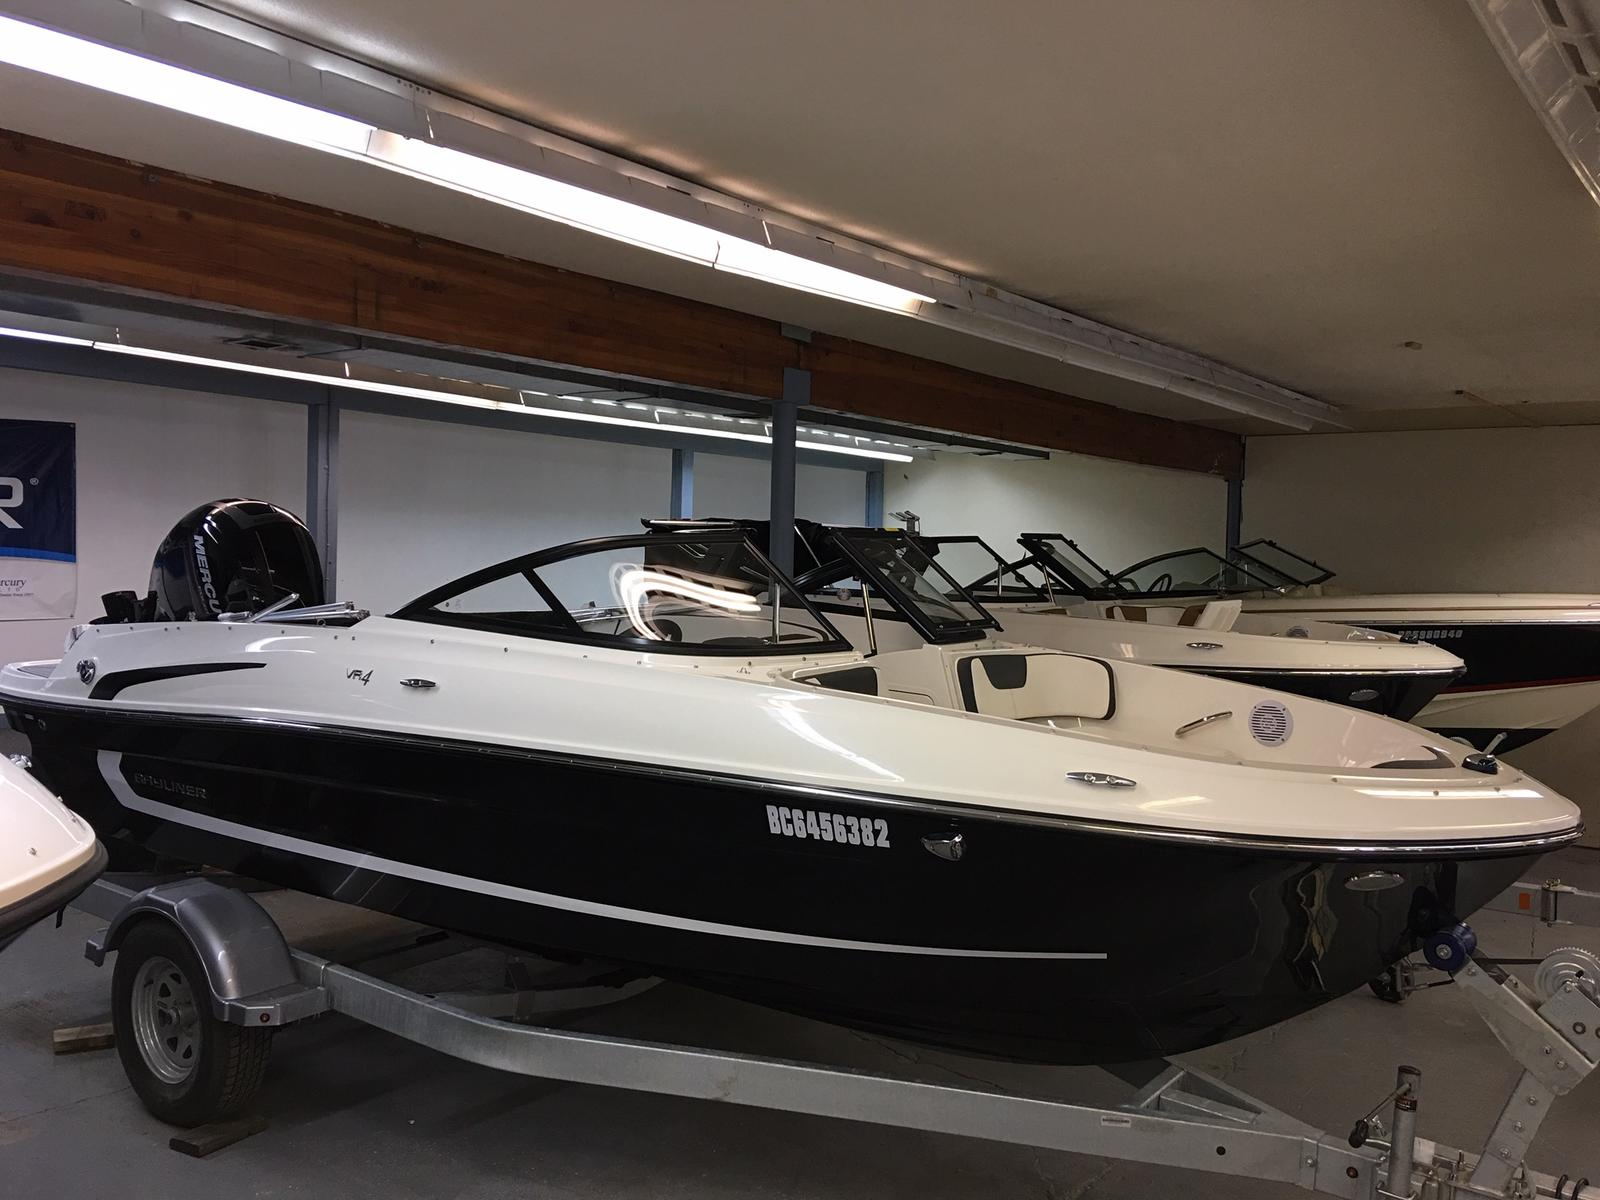 2019 Bayliner boat for sale, model of the boat is VR4 Bowrider Outboard & Image # 1 of 19